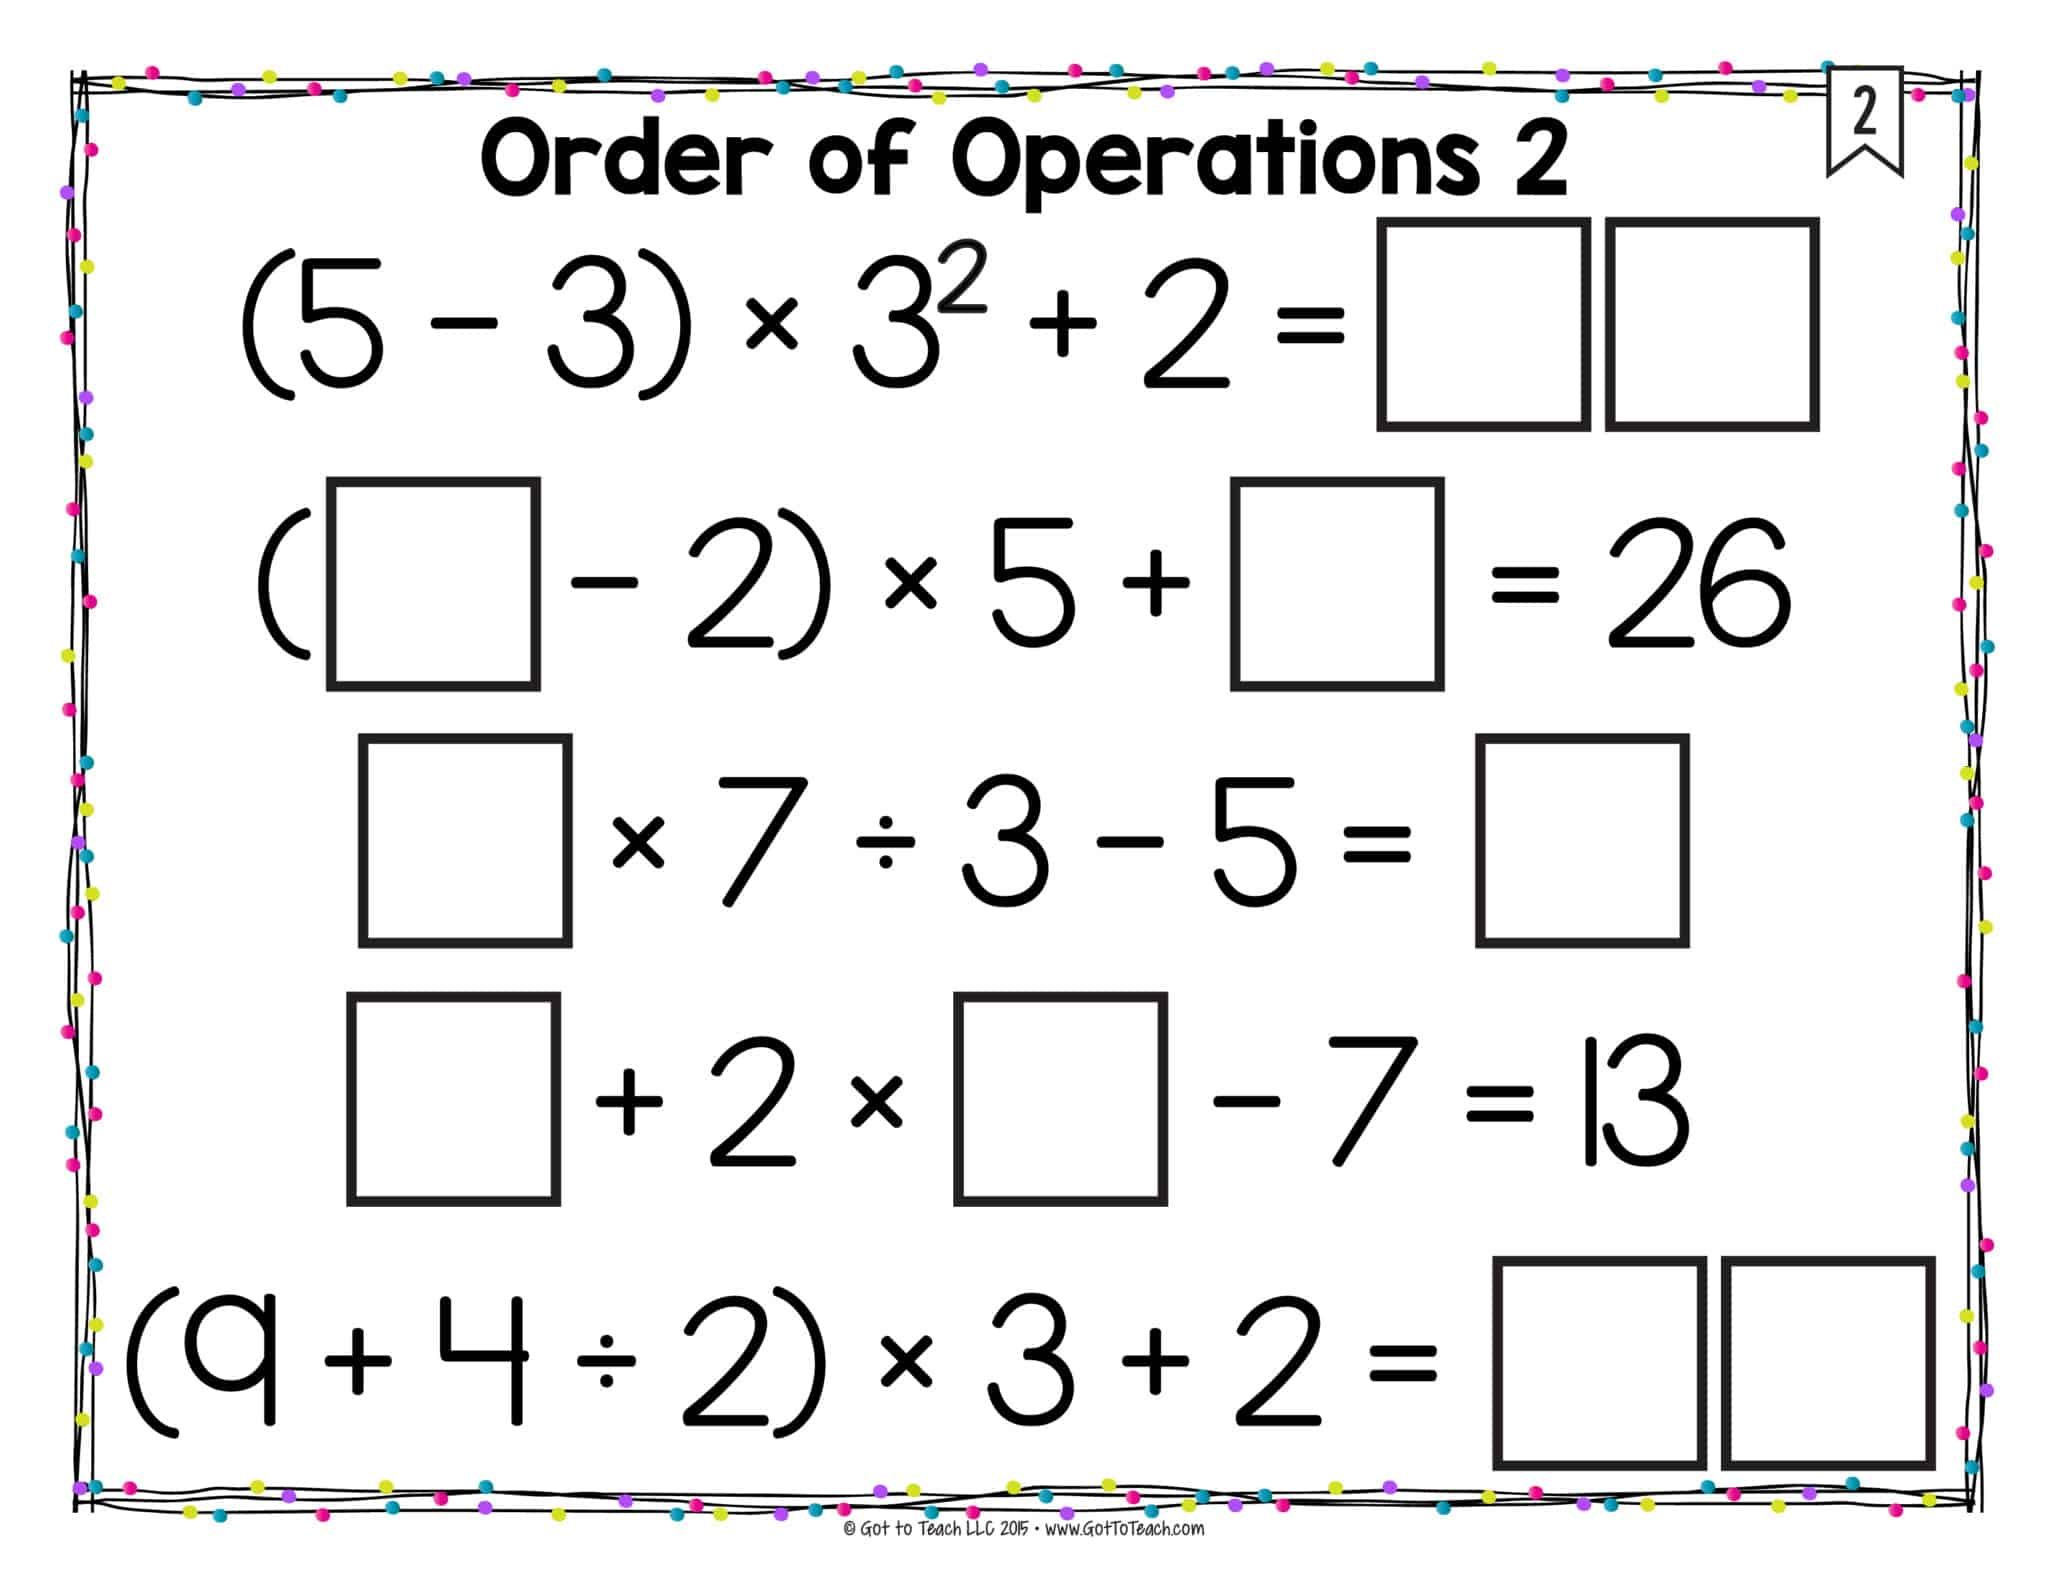 Order of Operations (with Exponents)